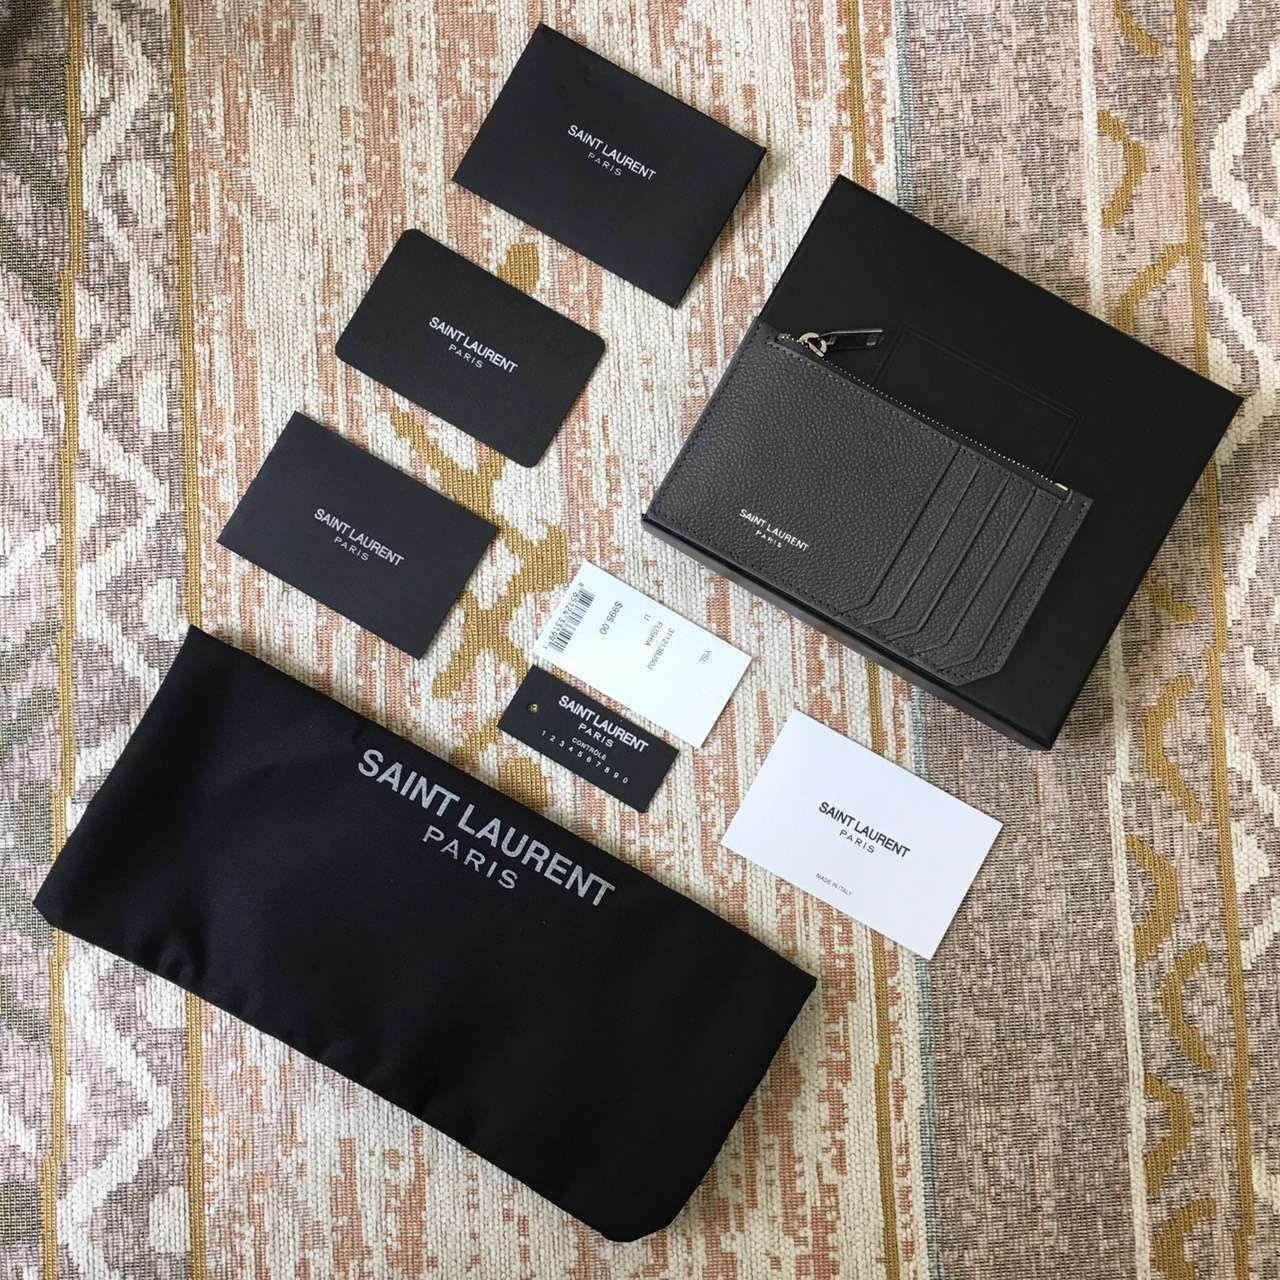 Limited Edition!2016 New Saint Laurent Small Leather Goods Cheap Sale-Saint Laurent Classic Paris 5 Fragments Zip Pouch in Dark Anthracite Leather